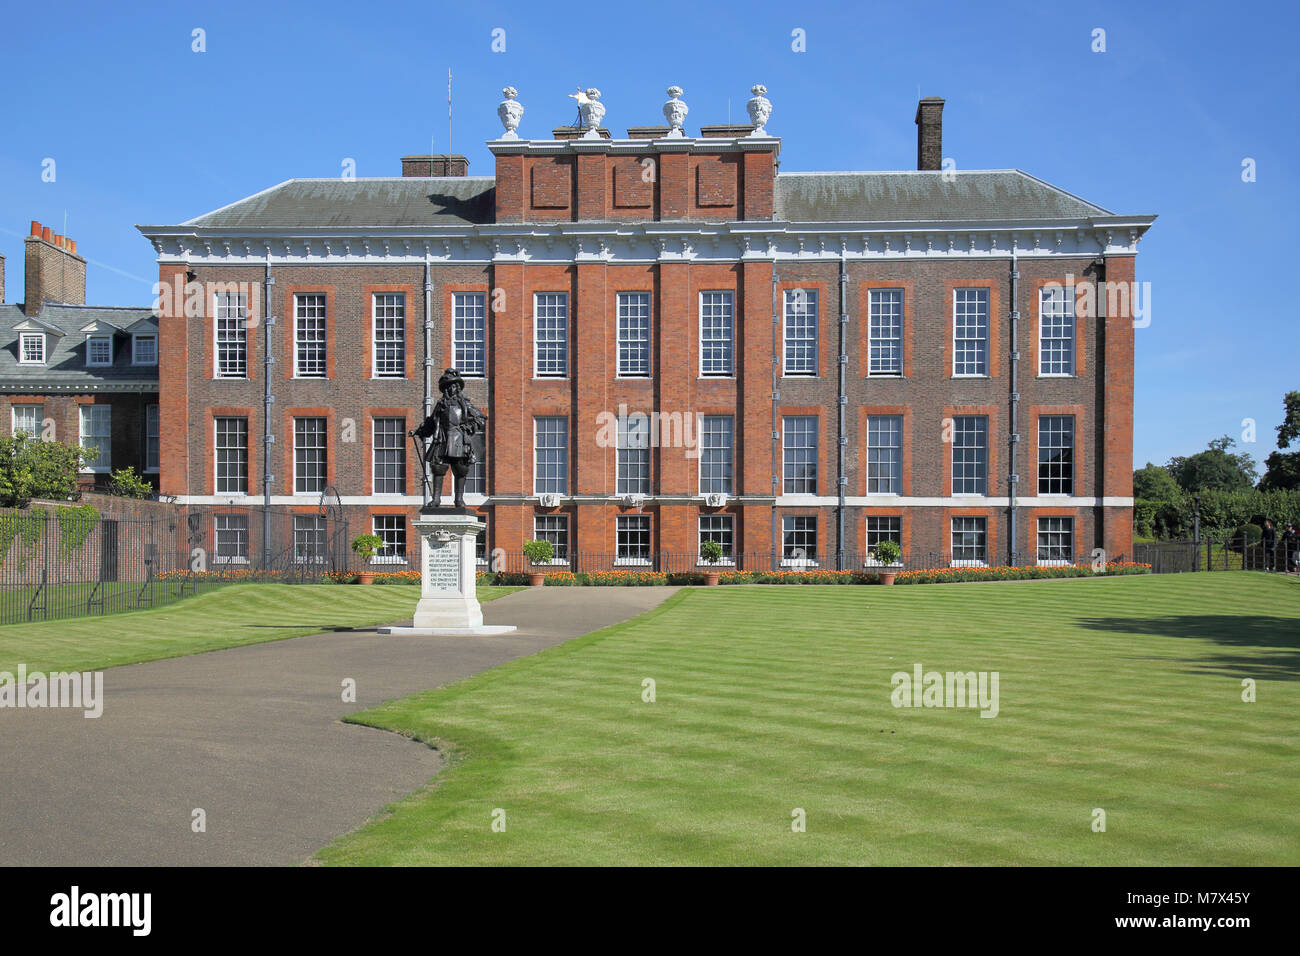 kensington palace in hyde park london - Stock Image